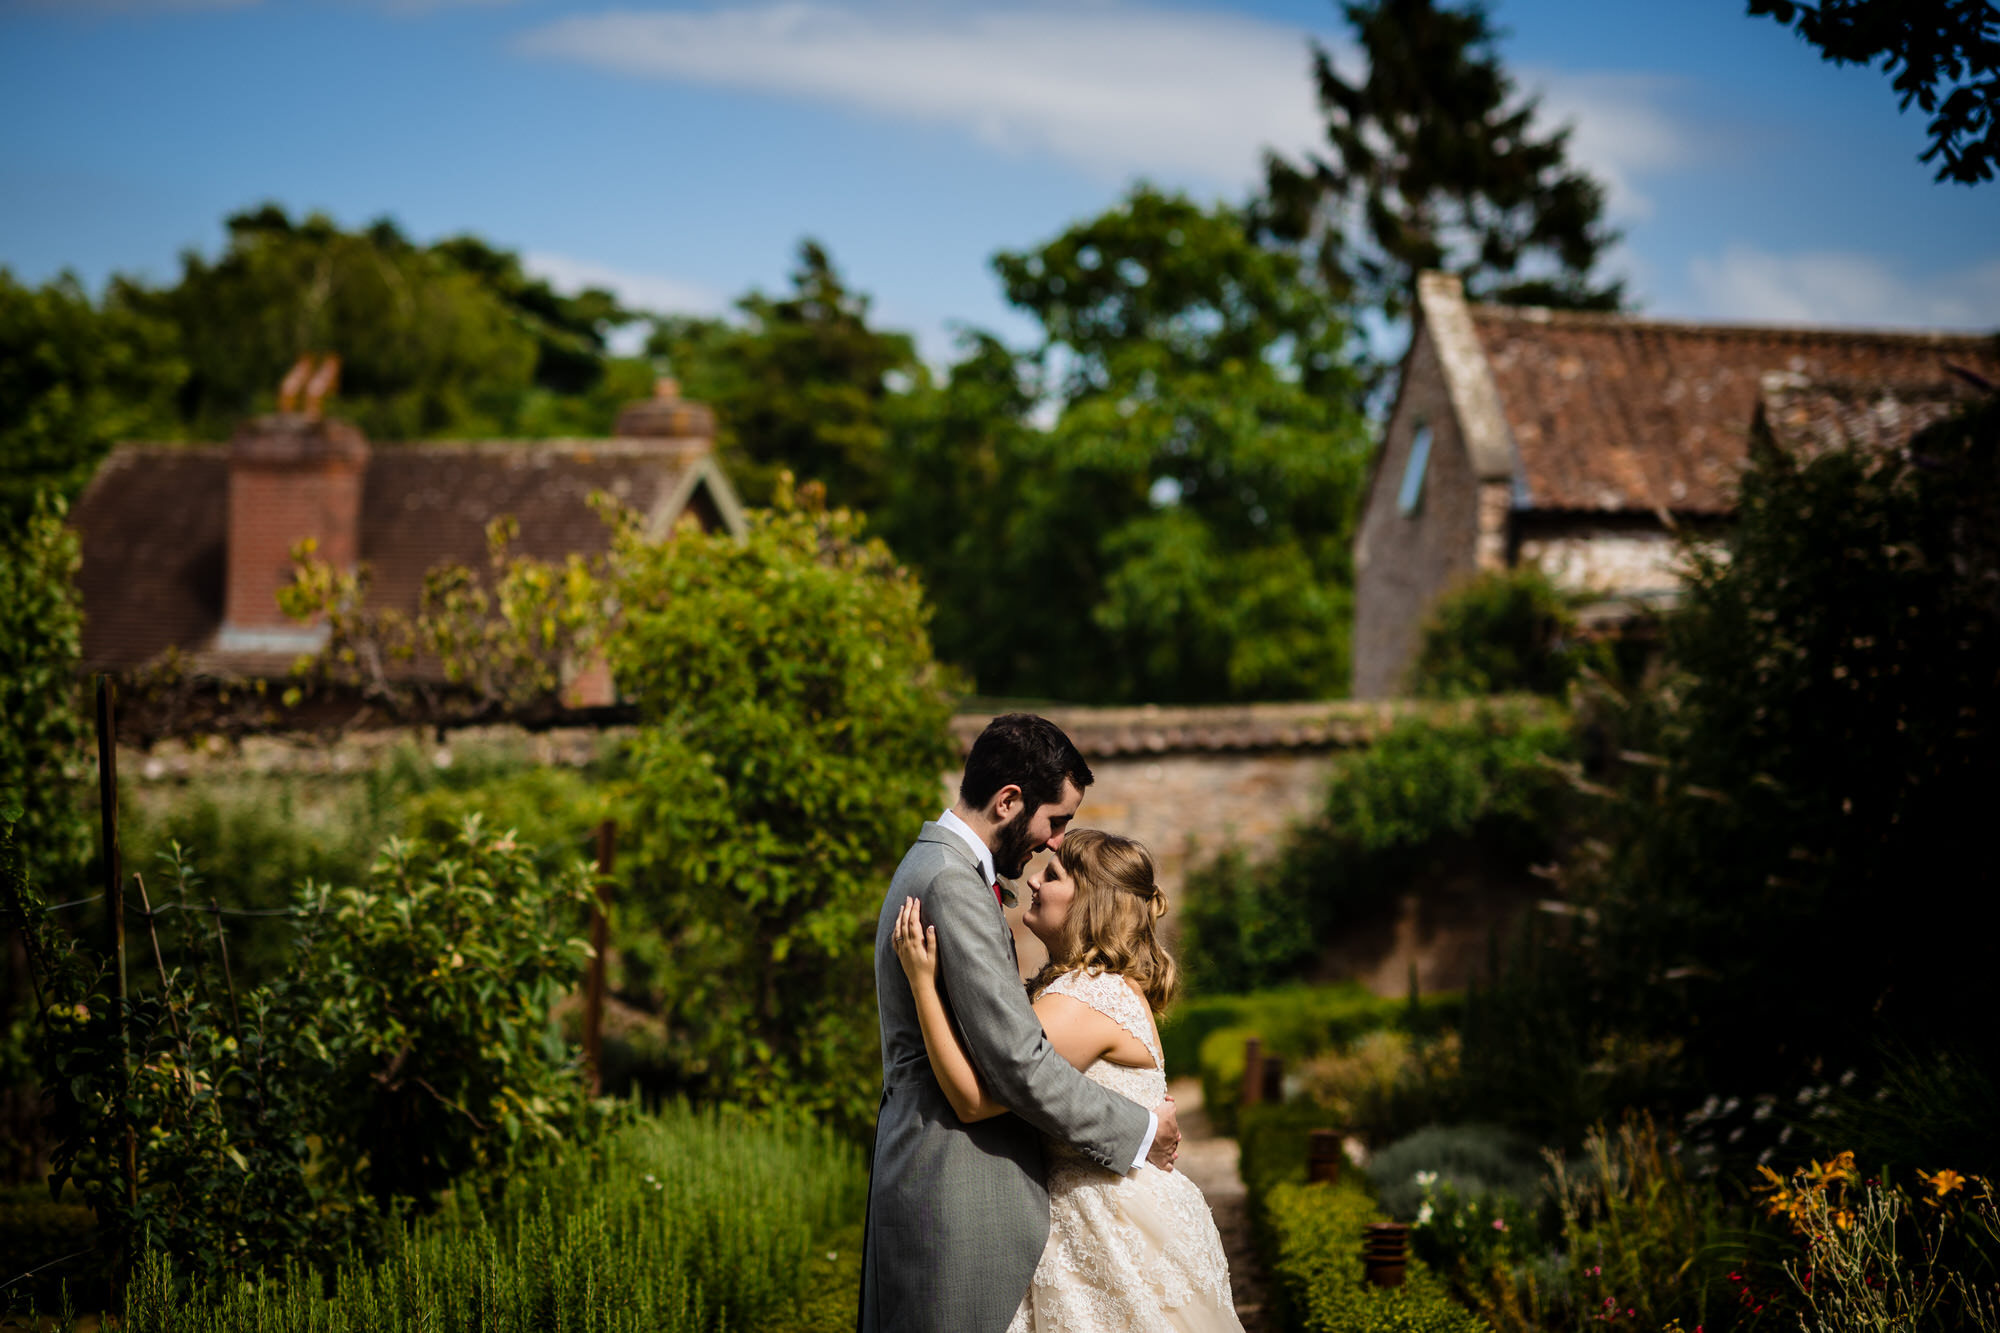 Coombe lodge wedding couple portrait in gardens